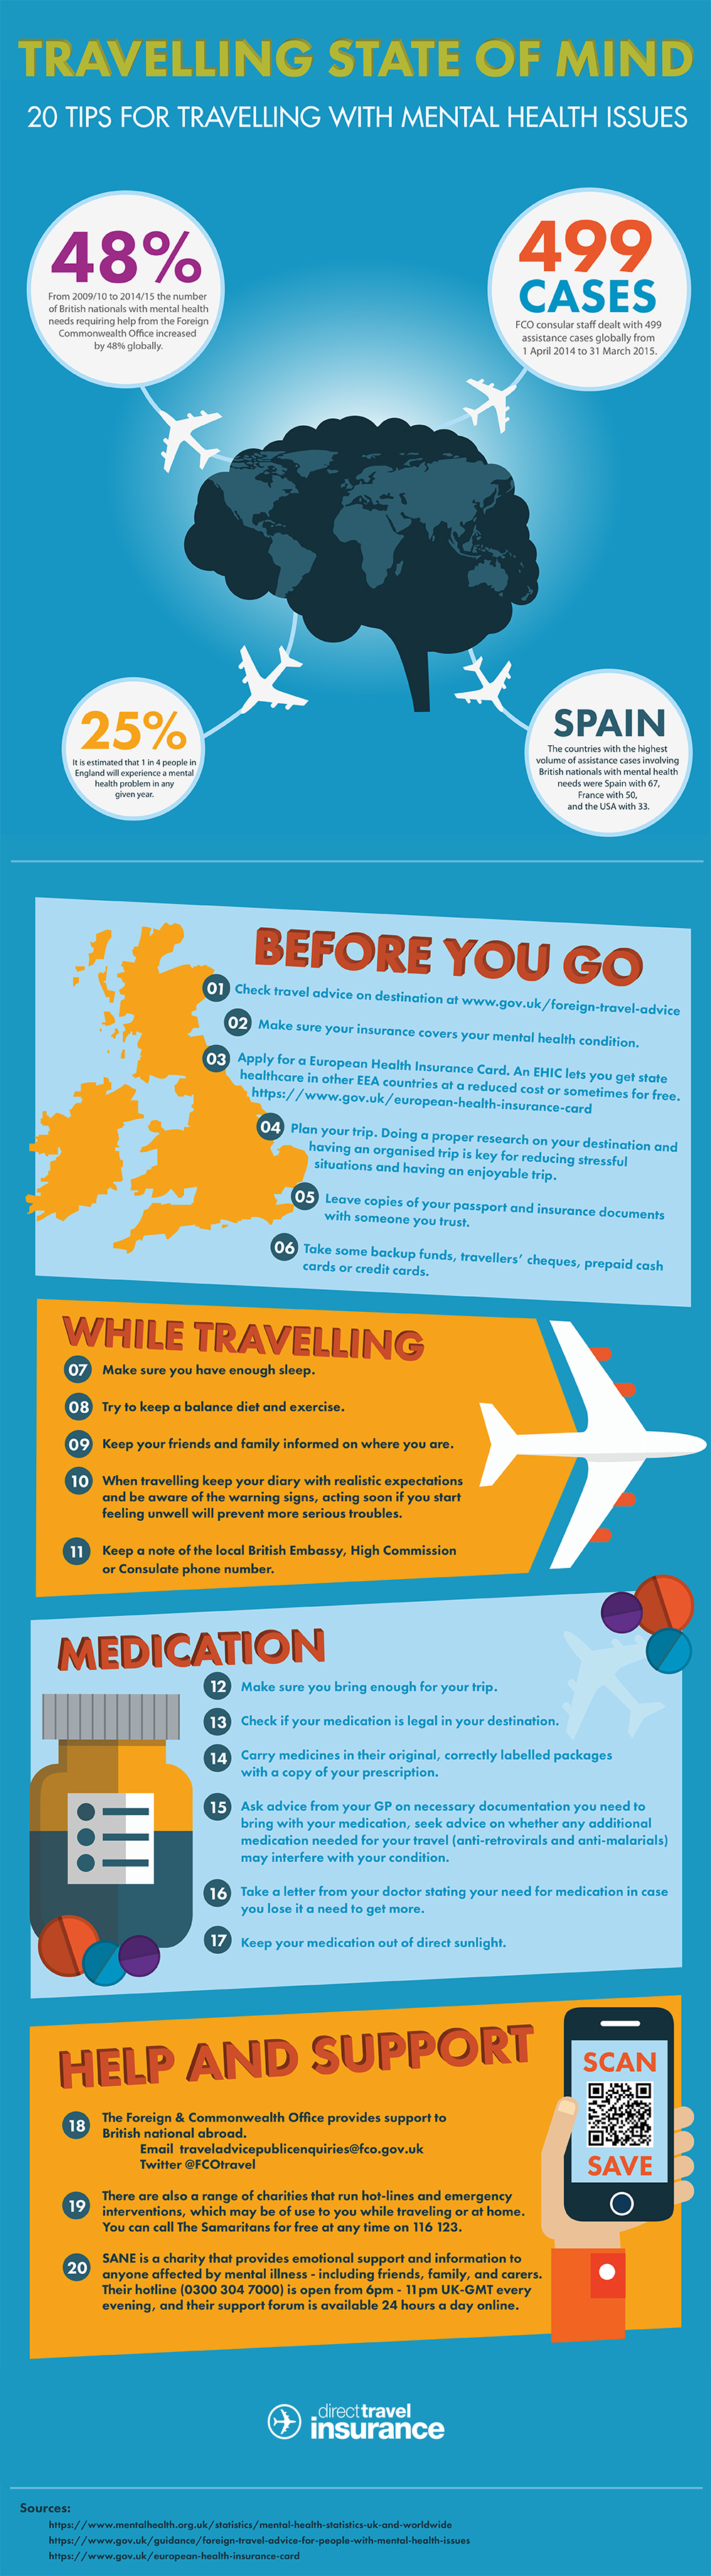 dti-infographic-travelling-state-of-mind